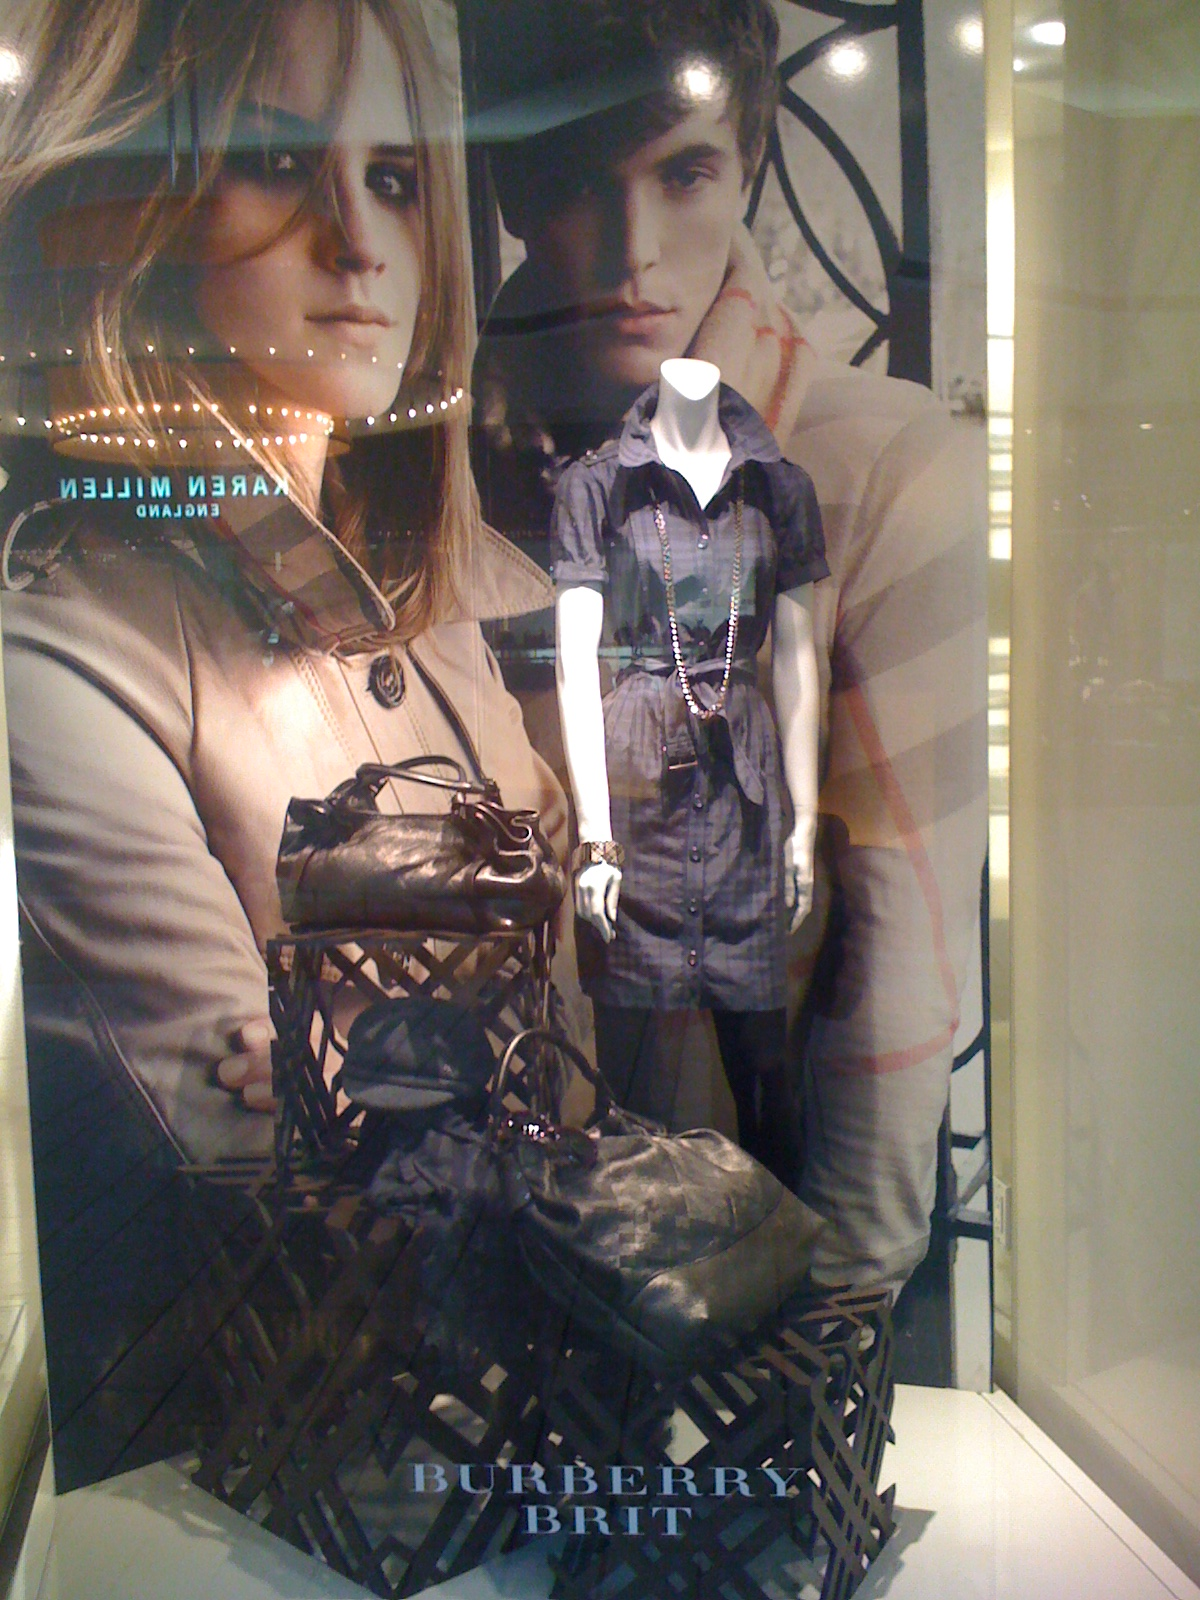 burberry's windows...polished & showing off their bags